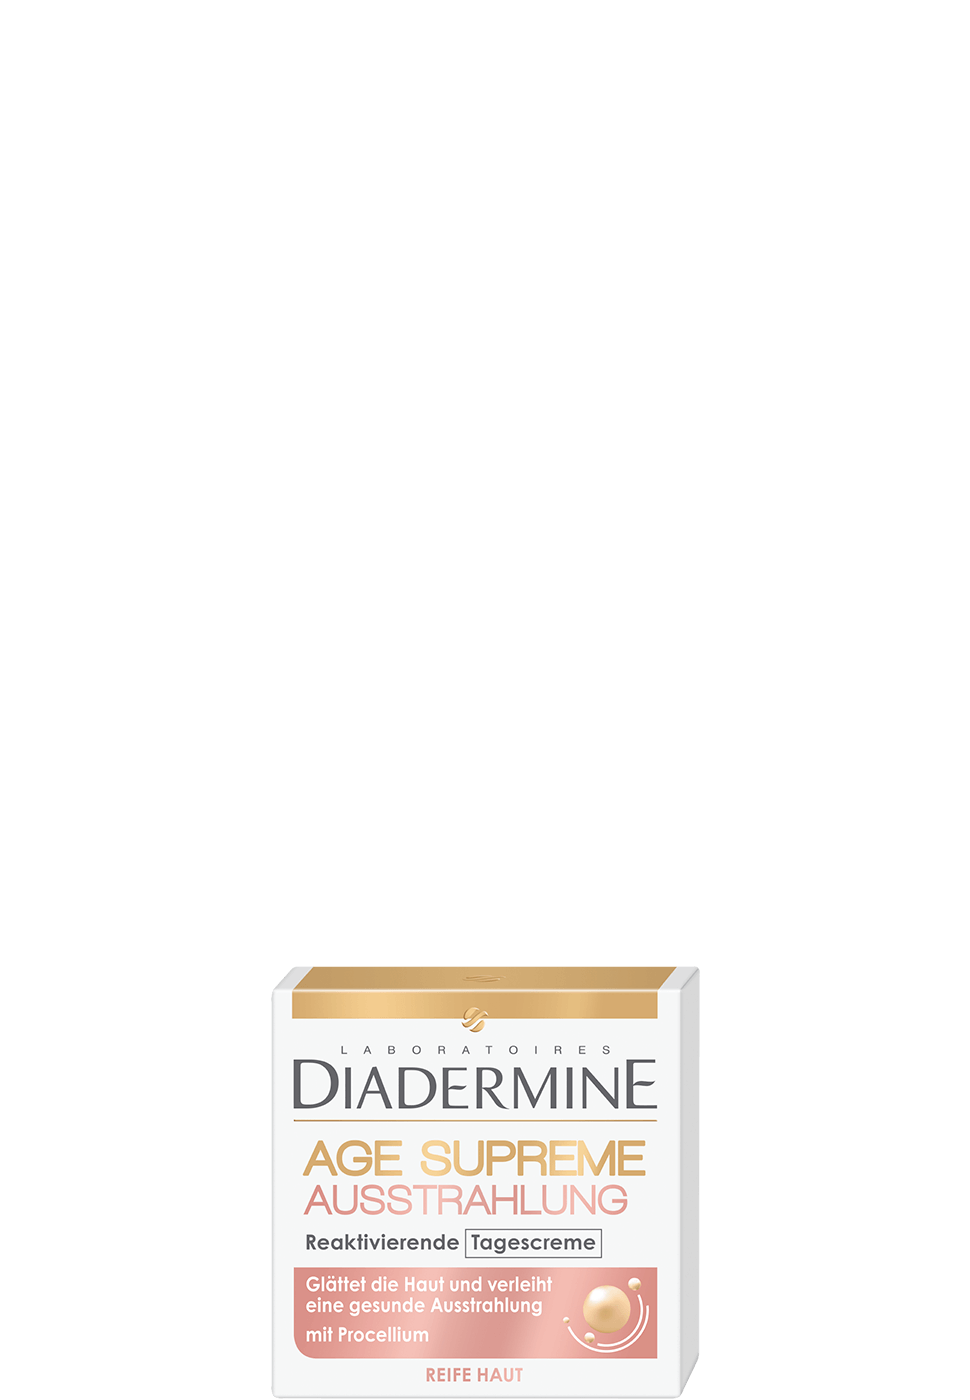 diadermine_at_age_supreme_ausstrahlung_tagescreme_970x1400